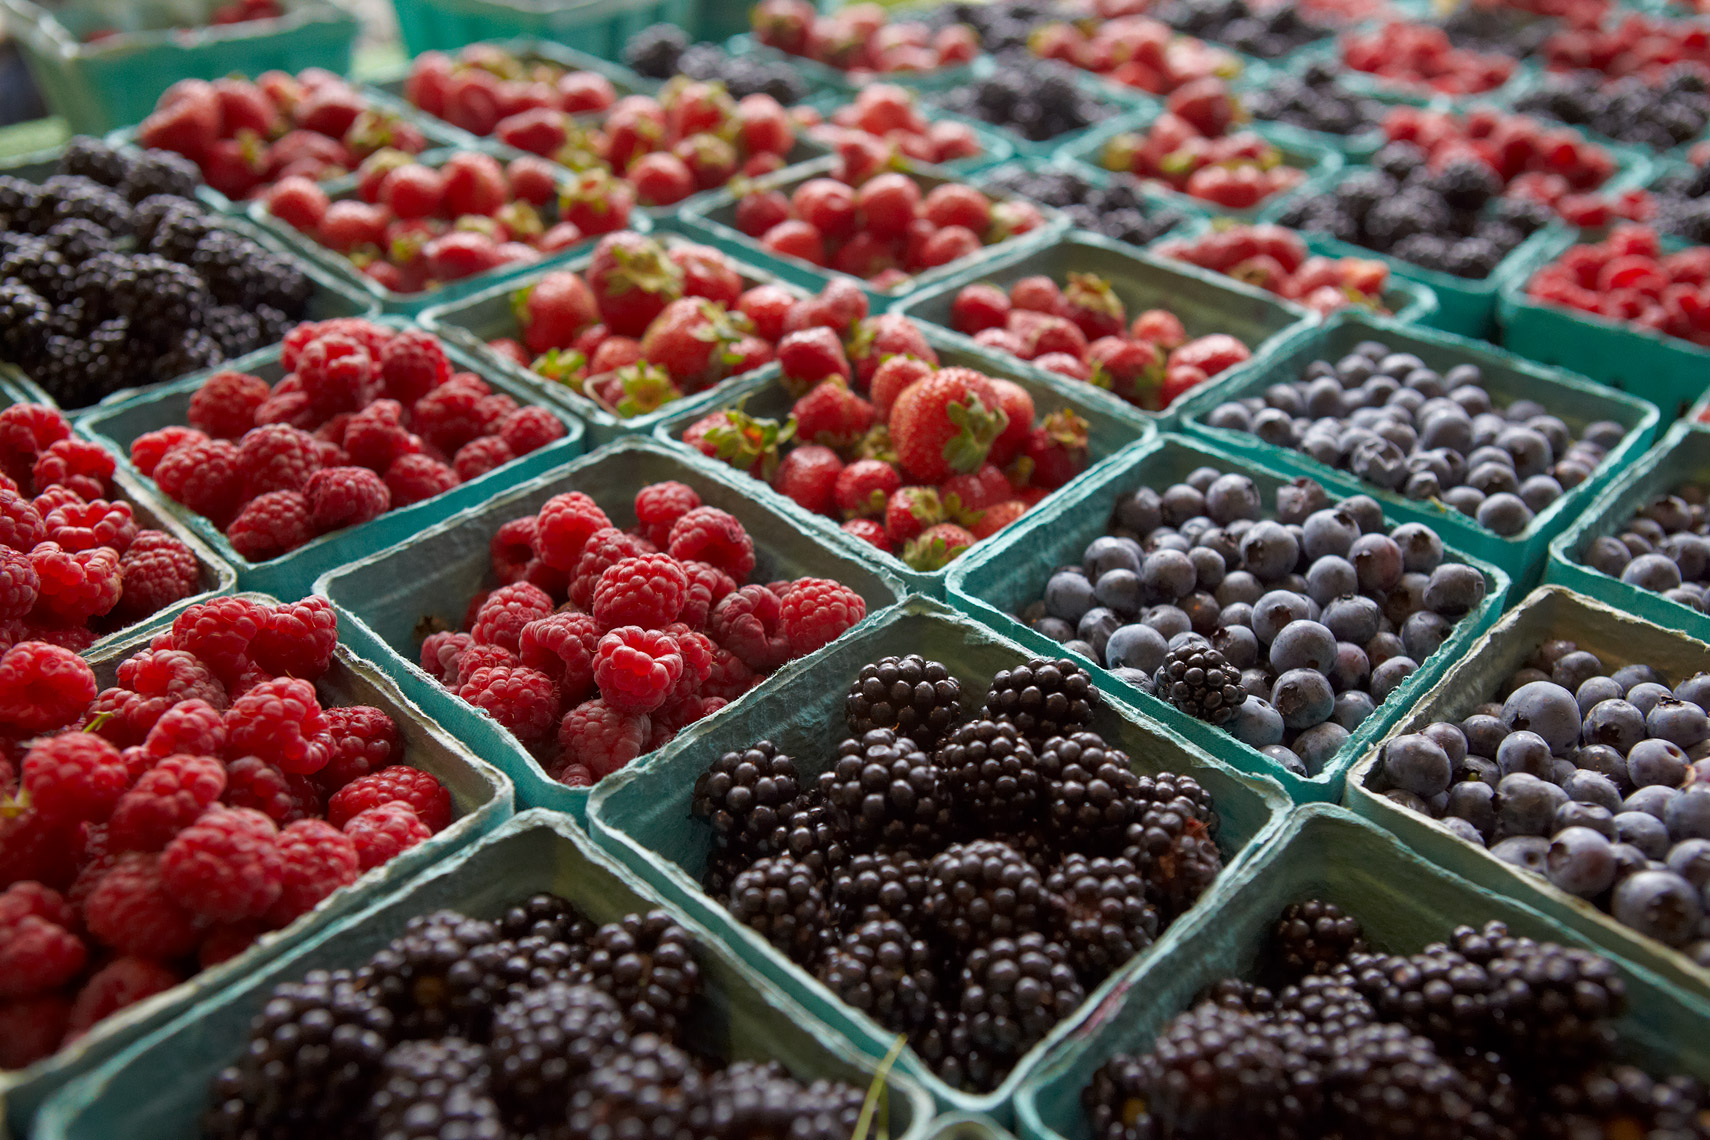 AlanCampbellPhotography, variety of fresh berries